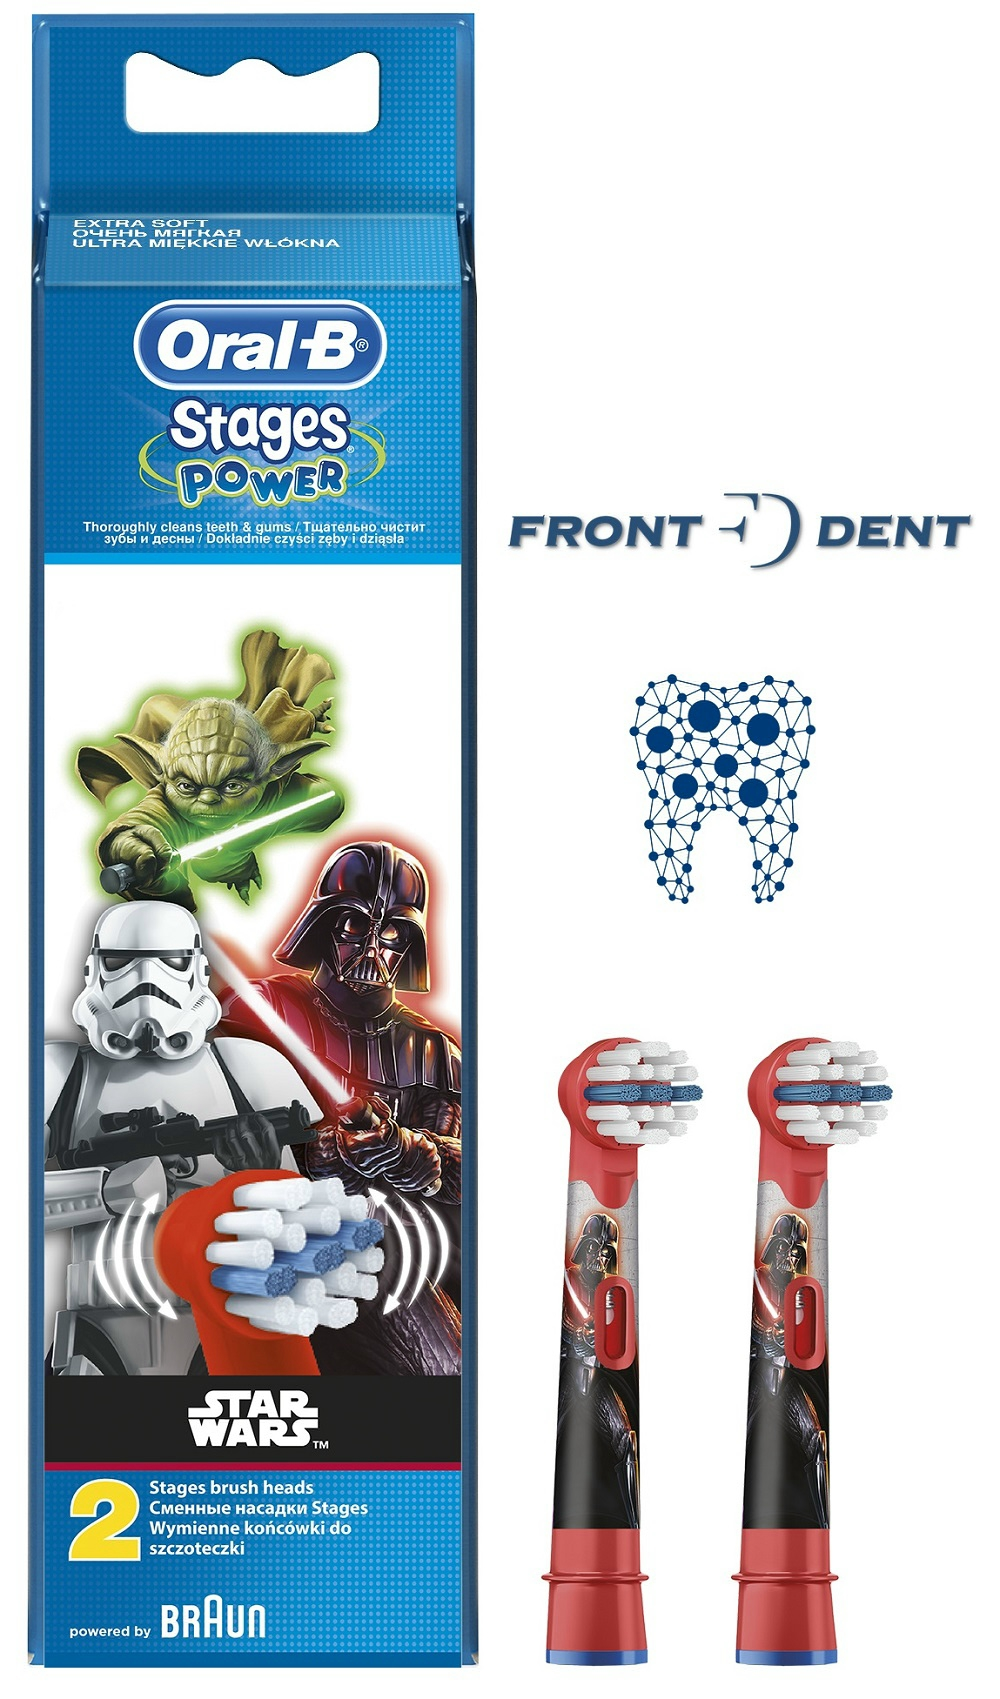 Oral-B EB10-2 pótfej 2db gyerek Star Wars